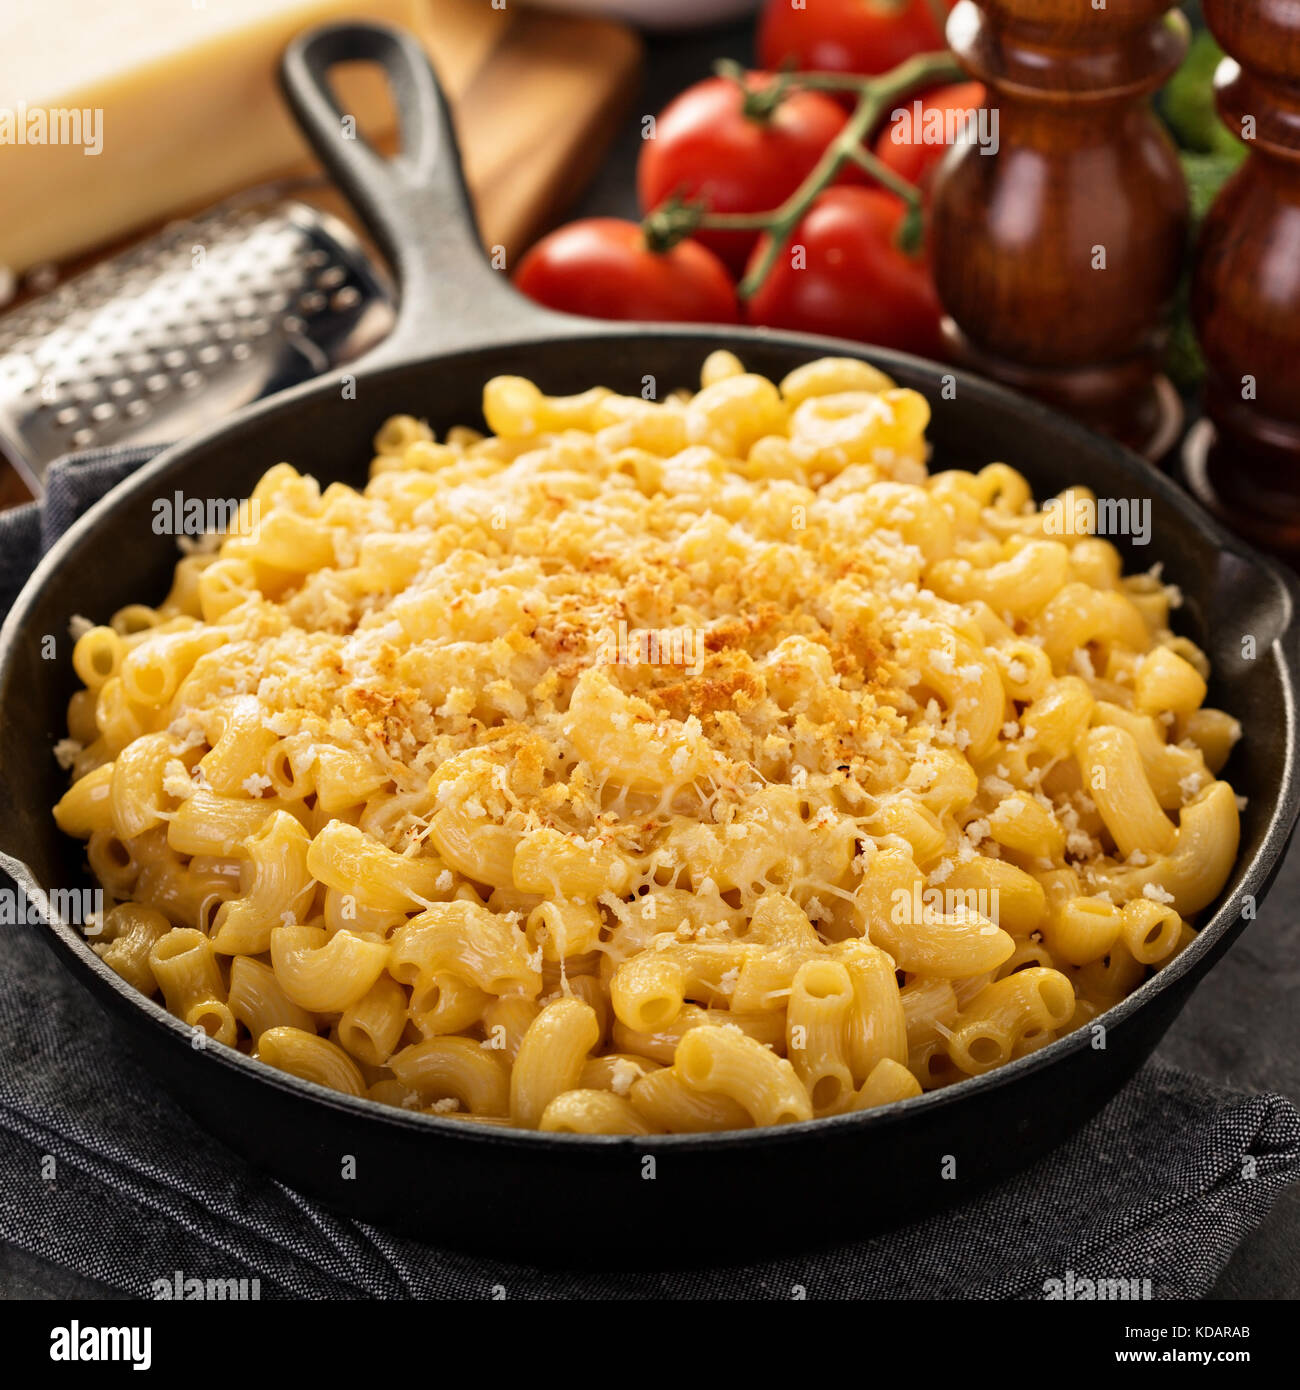 Mac and cheese in a cast iron pan - Stock Image